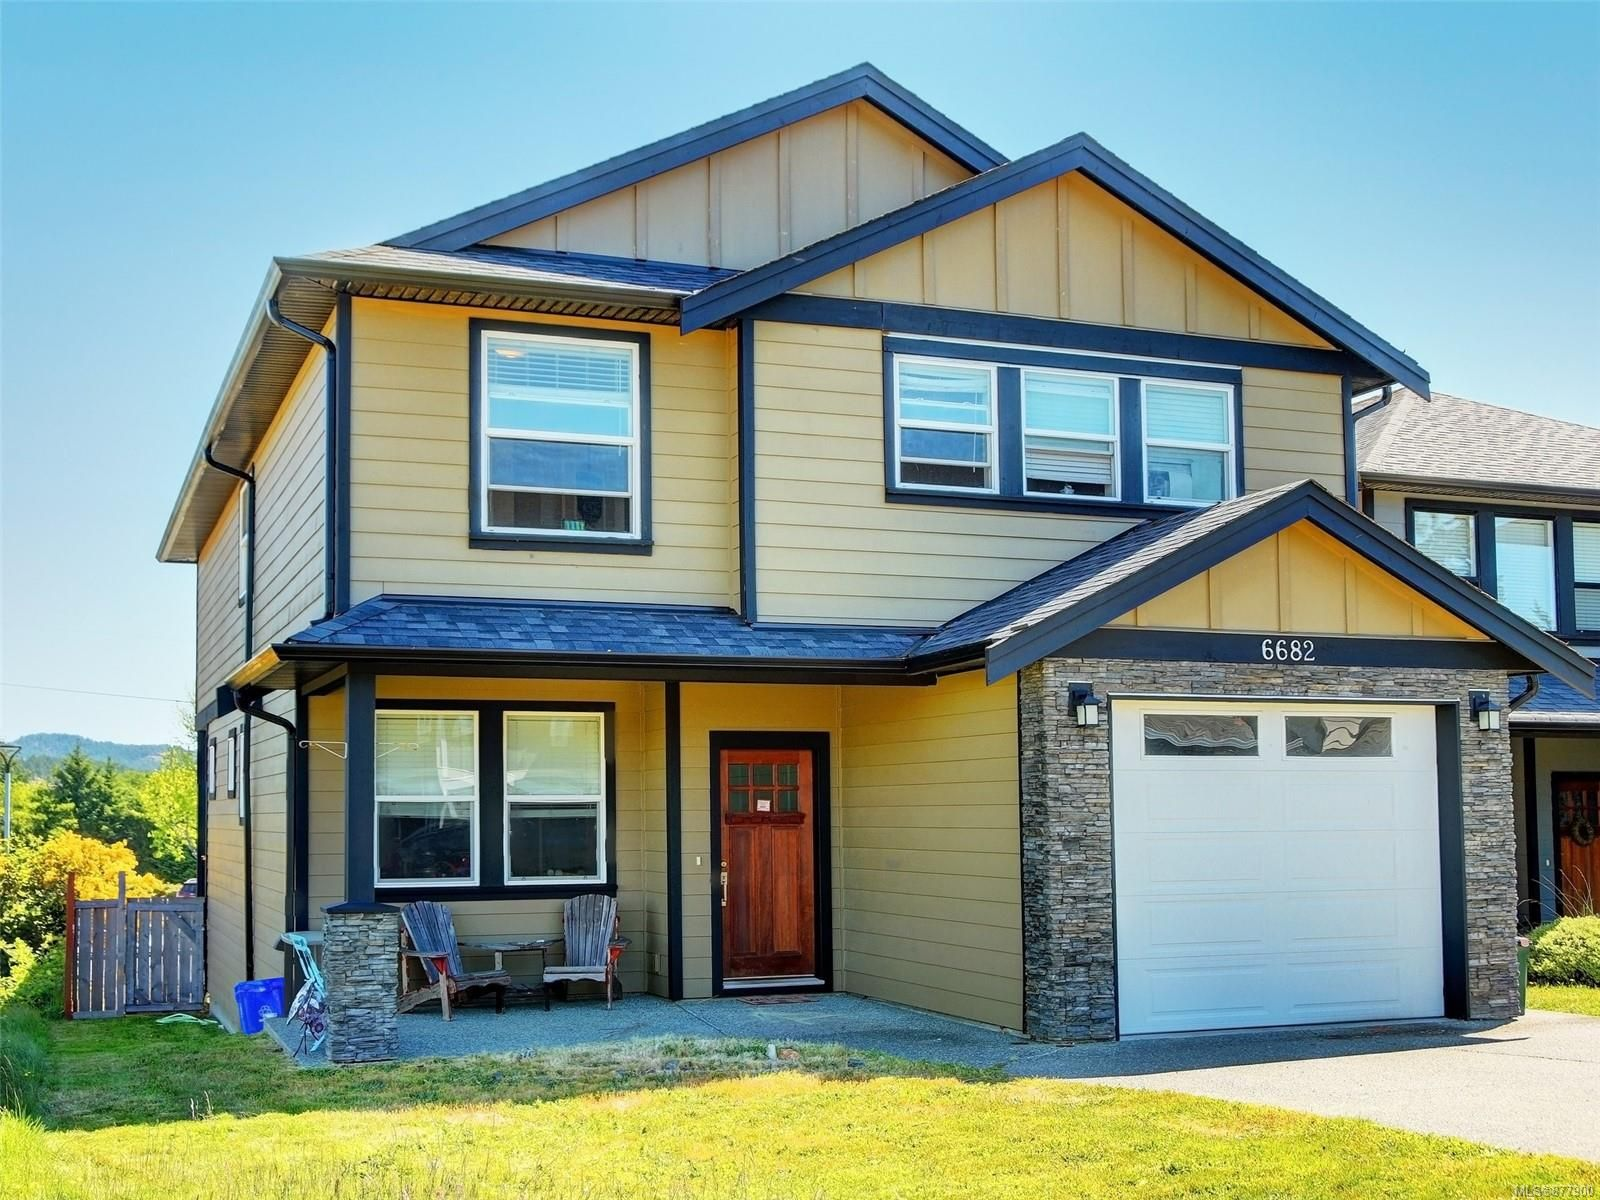 Main Photo: 6682 Steeple Chase in : Sk Broomhill House for sale (Sooke)  : MLS®# 877900